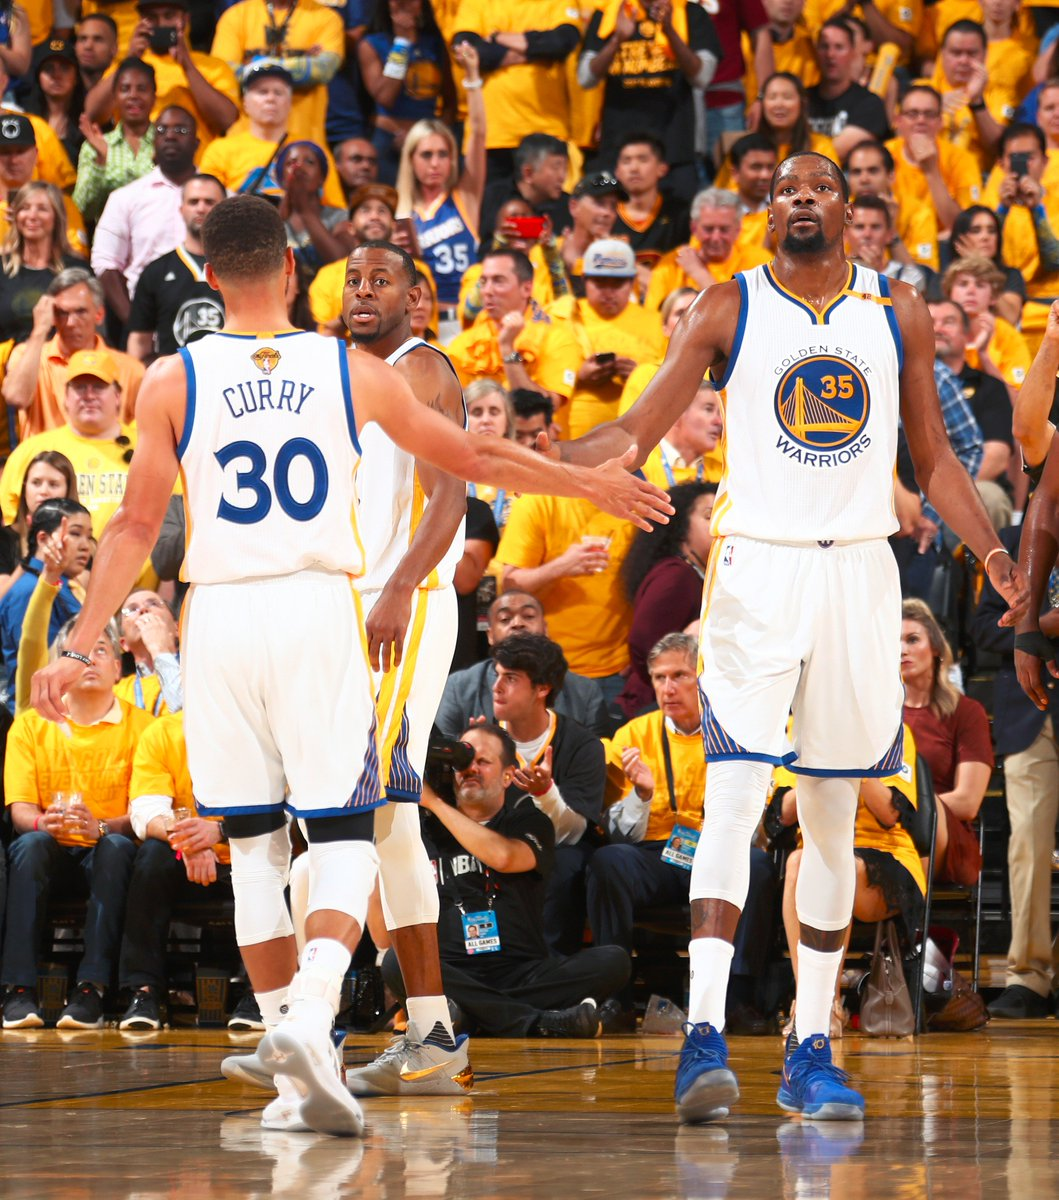 KD & Steph combined for 73 PTS in Game 5. That's the 2nd most for a duo in a #NBAFinals clinching win.